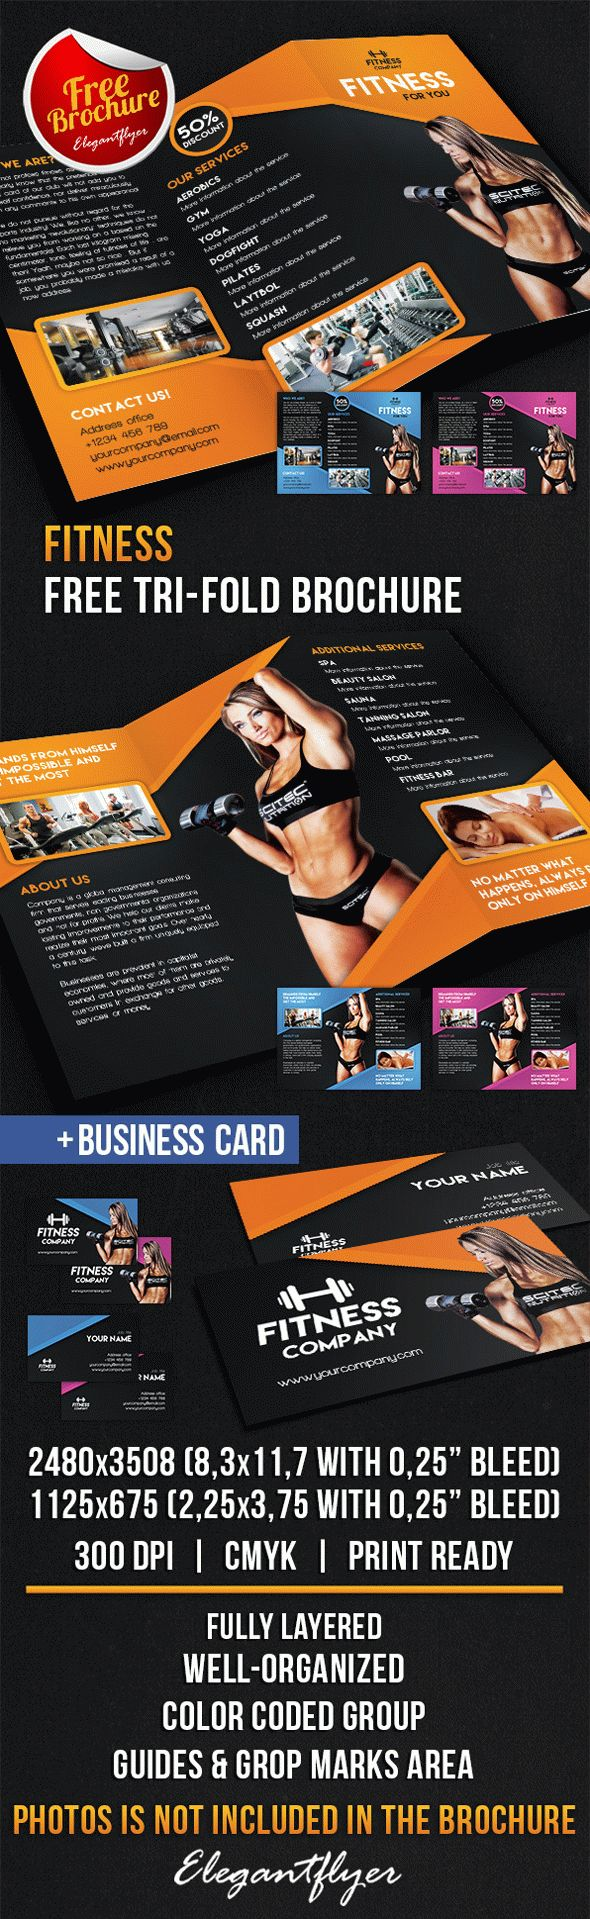 Fitness tri fold brochure free psd template by for Fitness brochure design